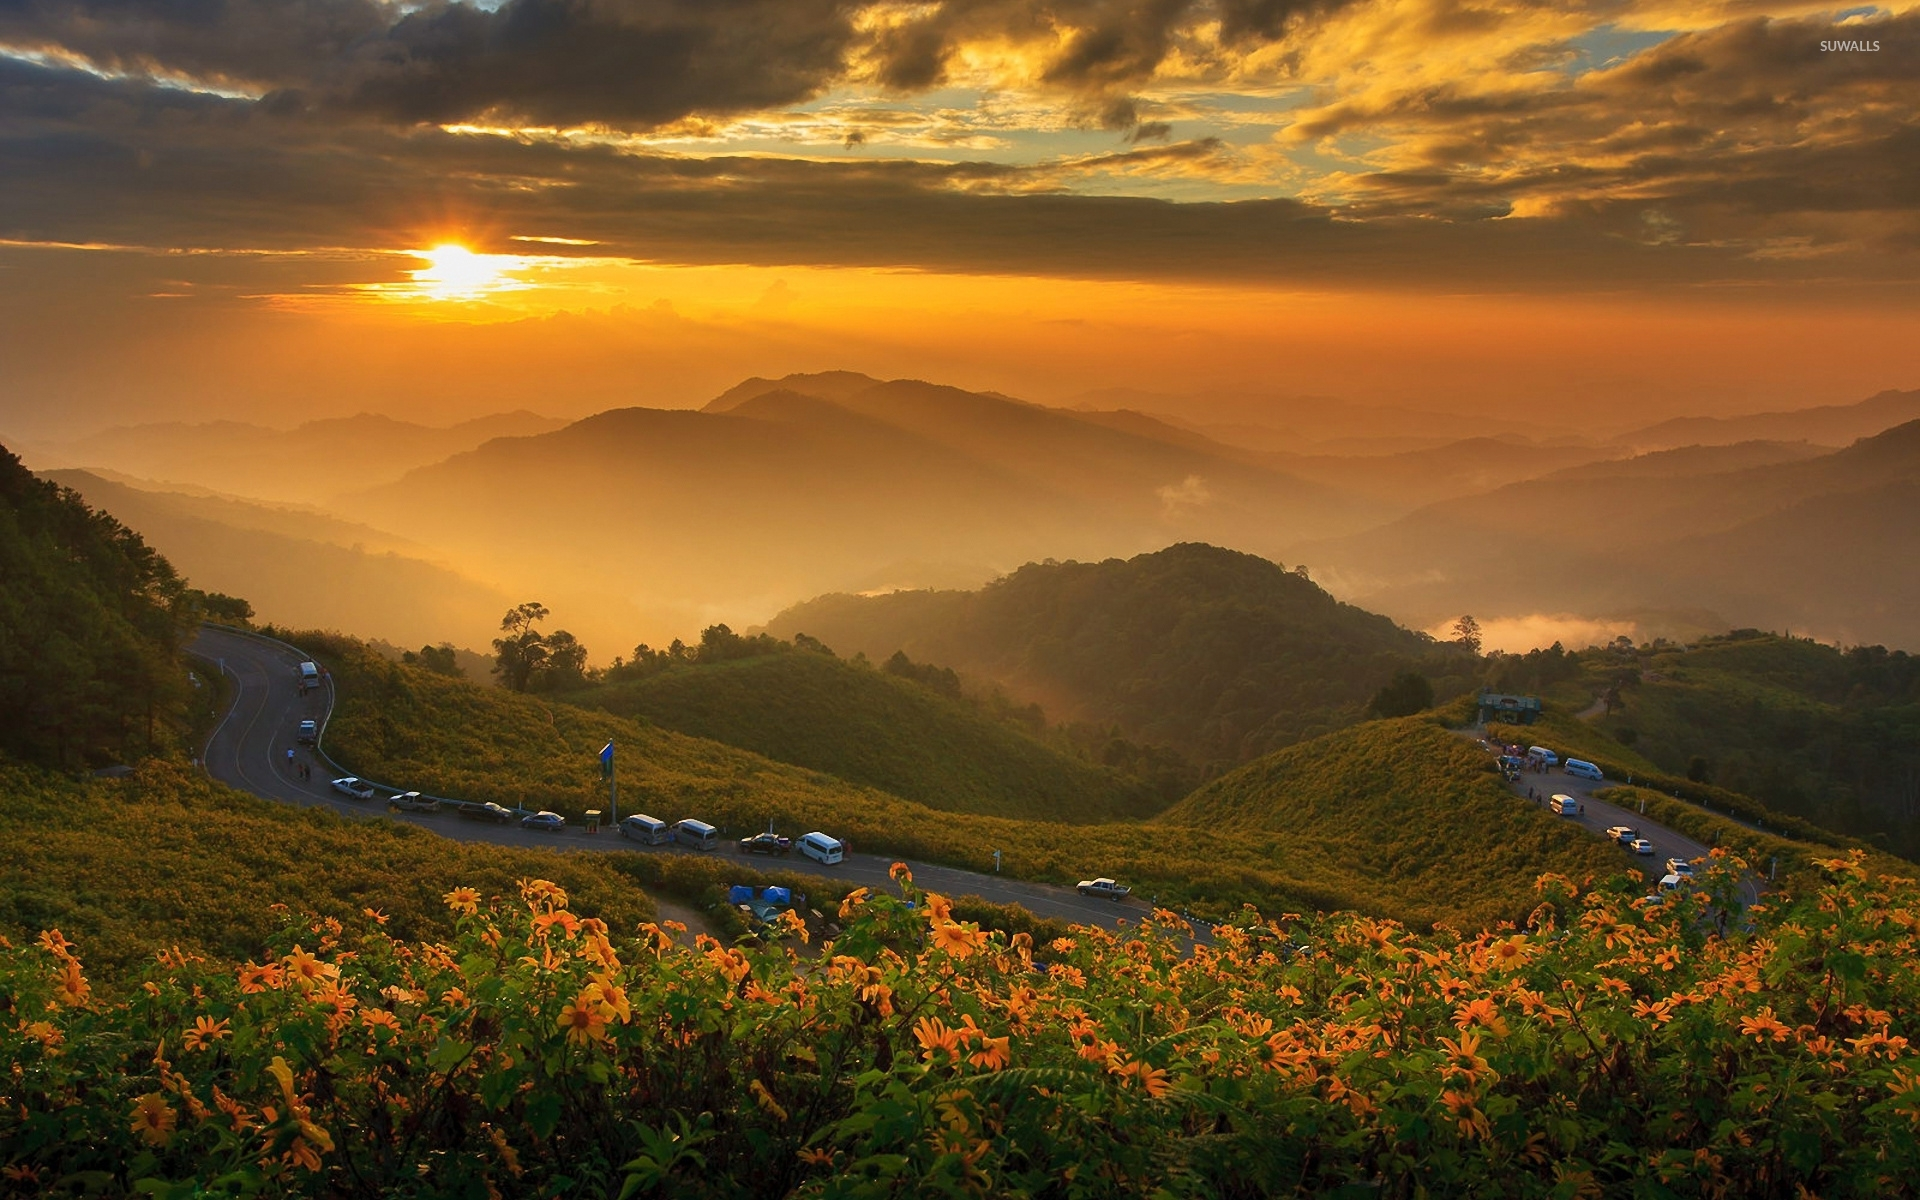 Great golden sunset in the mountains wallpaper - Nature ...